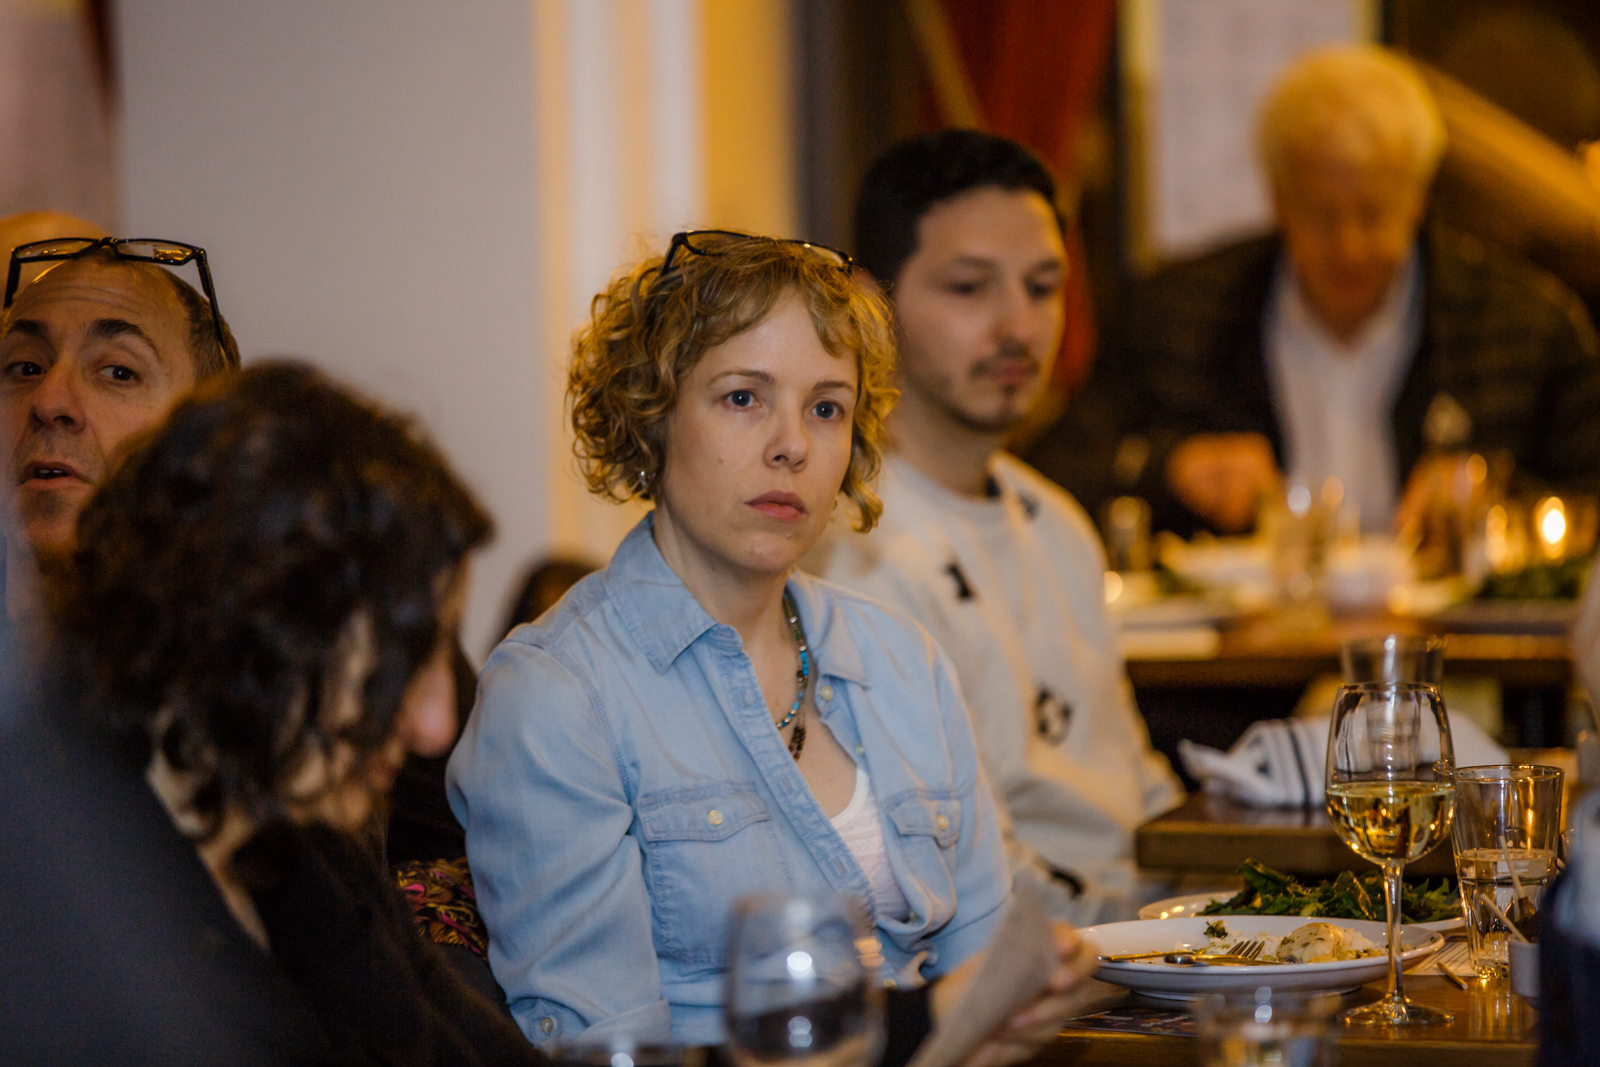 180222-dinner-and-docs-icarus-051.jpg